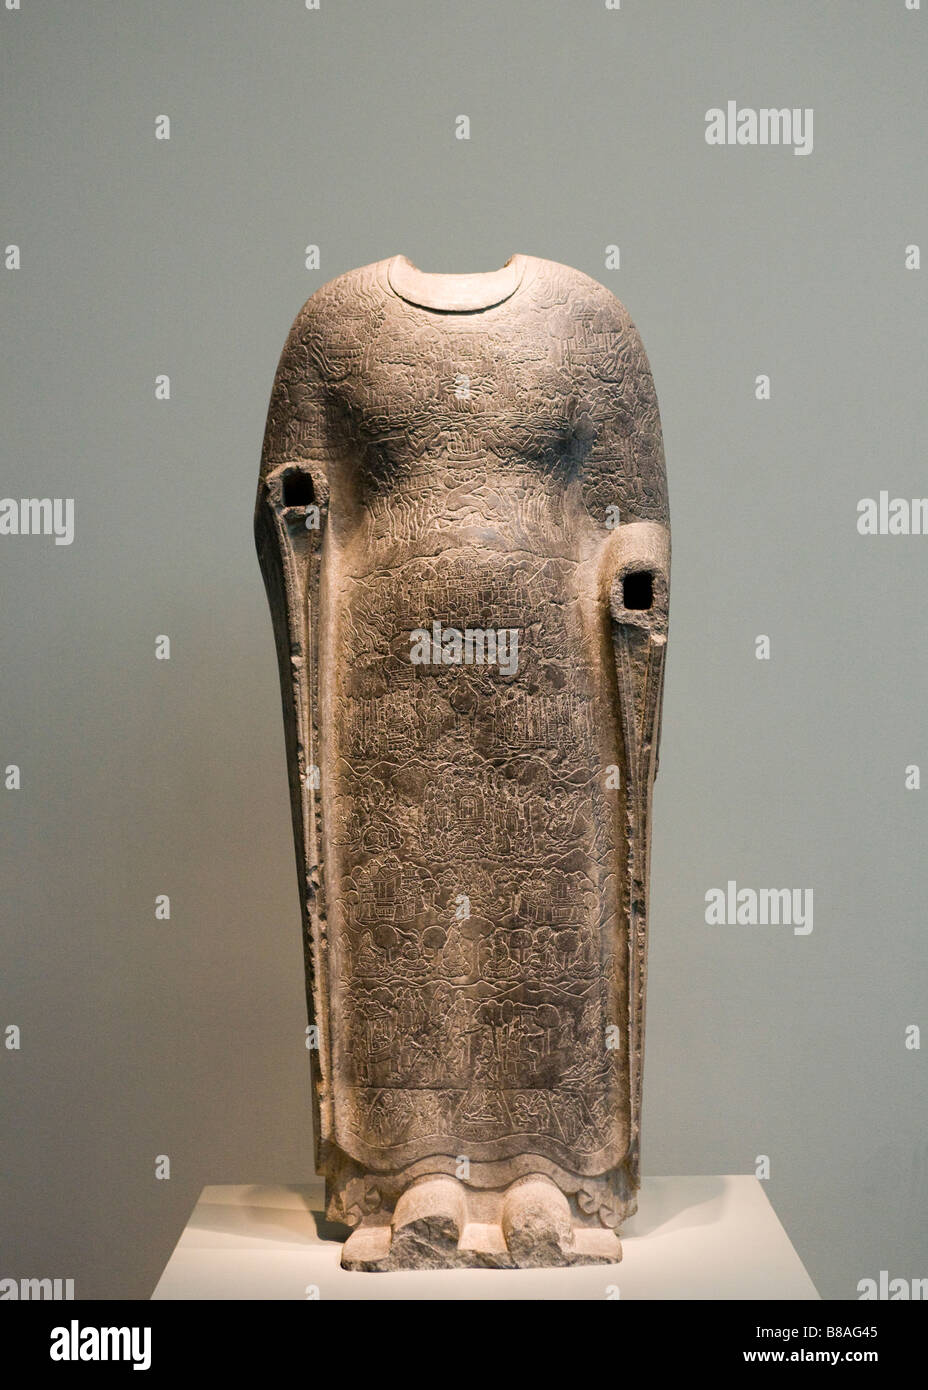 Cosmological buddha china sui dynasty stock photo 22359797 alamy cosmological buddha china sui dynasty biocorpaavc Choice Image